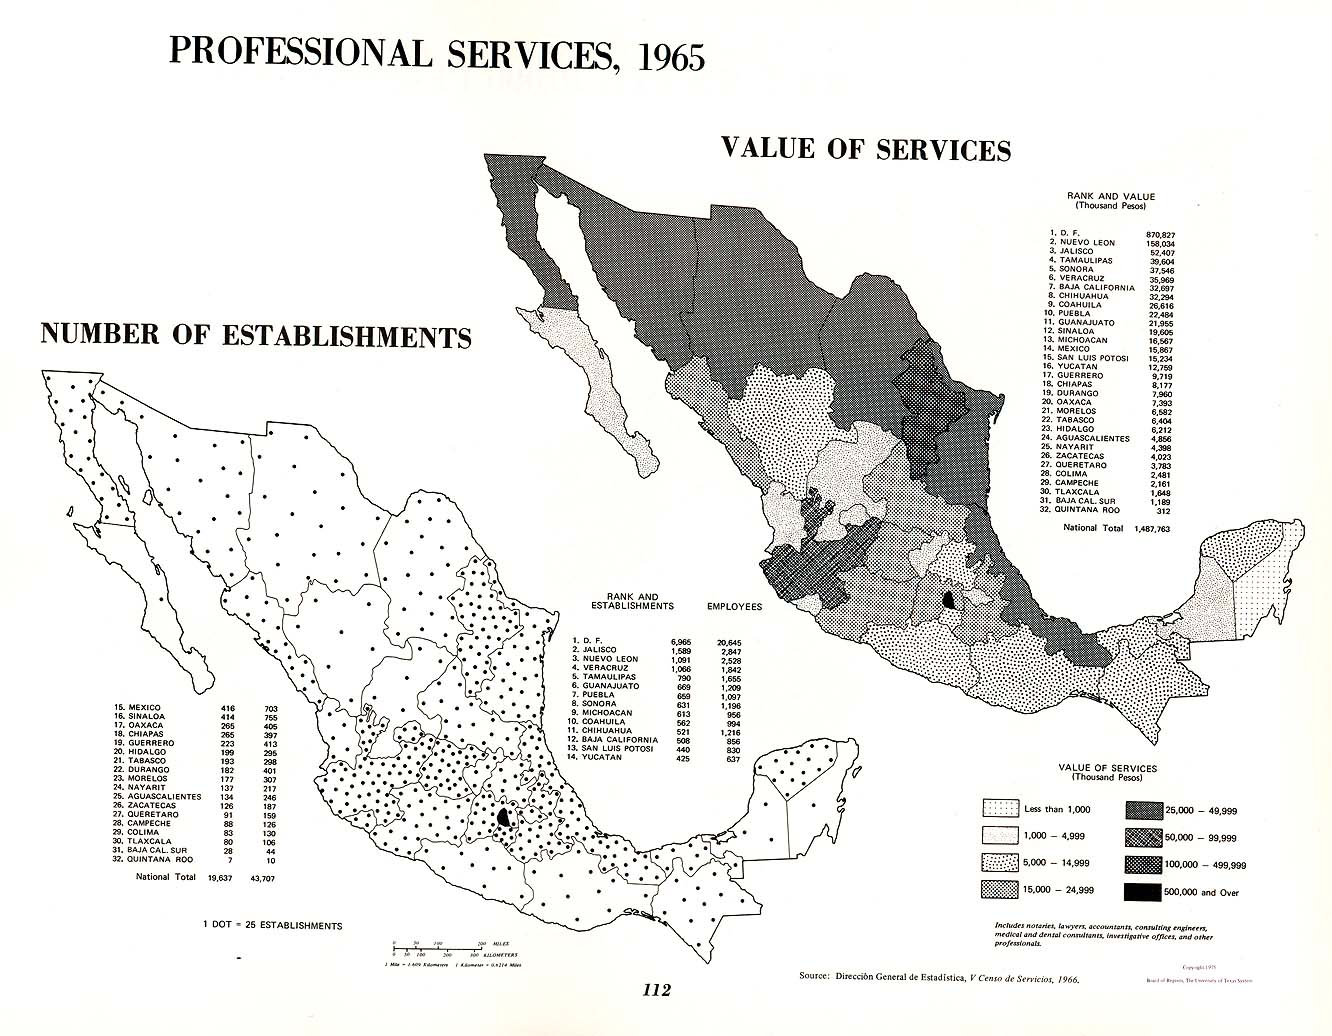 Professional Services in Mexico 1965